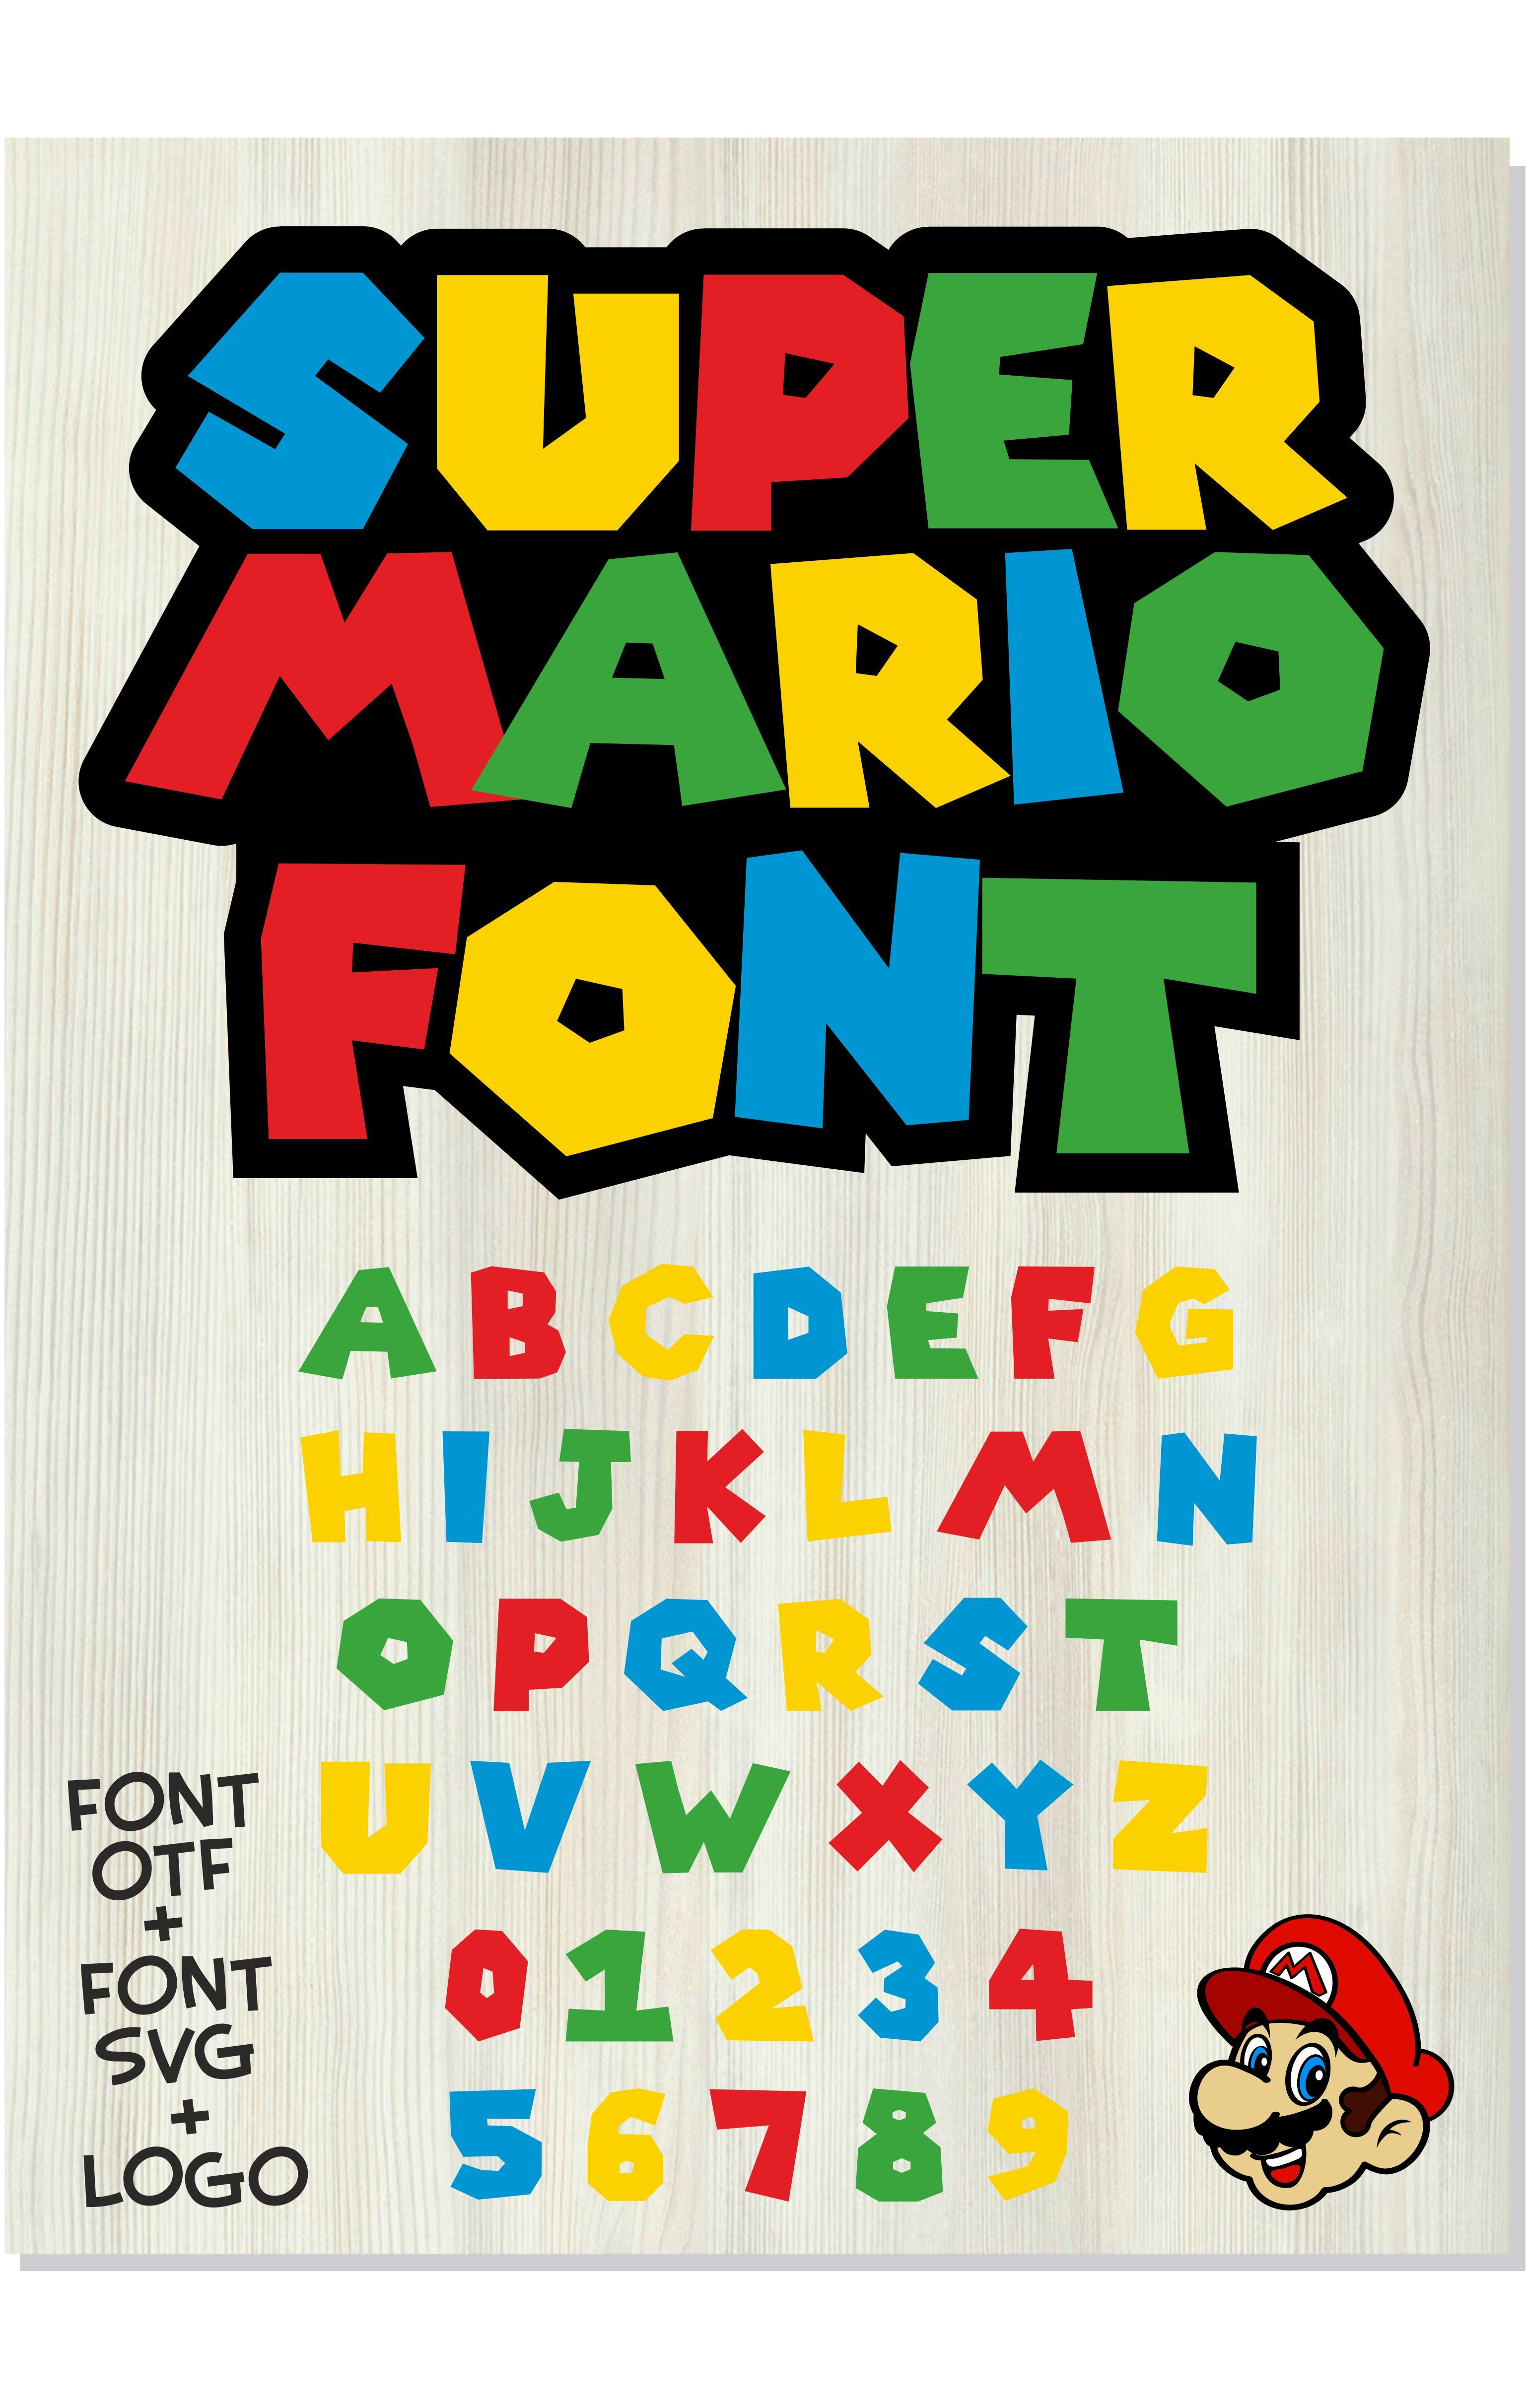 Super Mario Text : super, mario, Gamer, Installable, Letters, Cricut,, Instant, Download, Mario, Birthday,, Birthday, Party,, Super